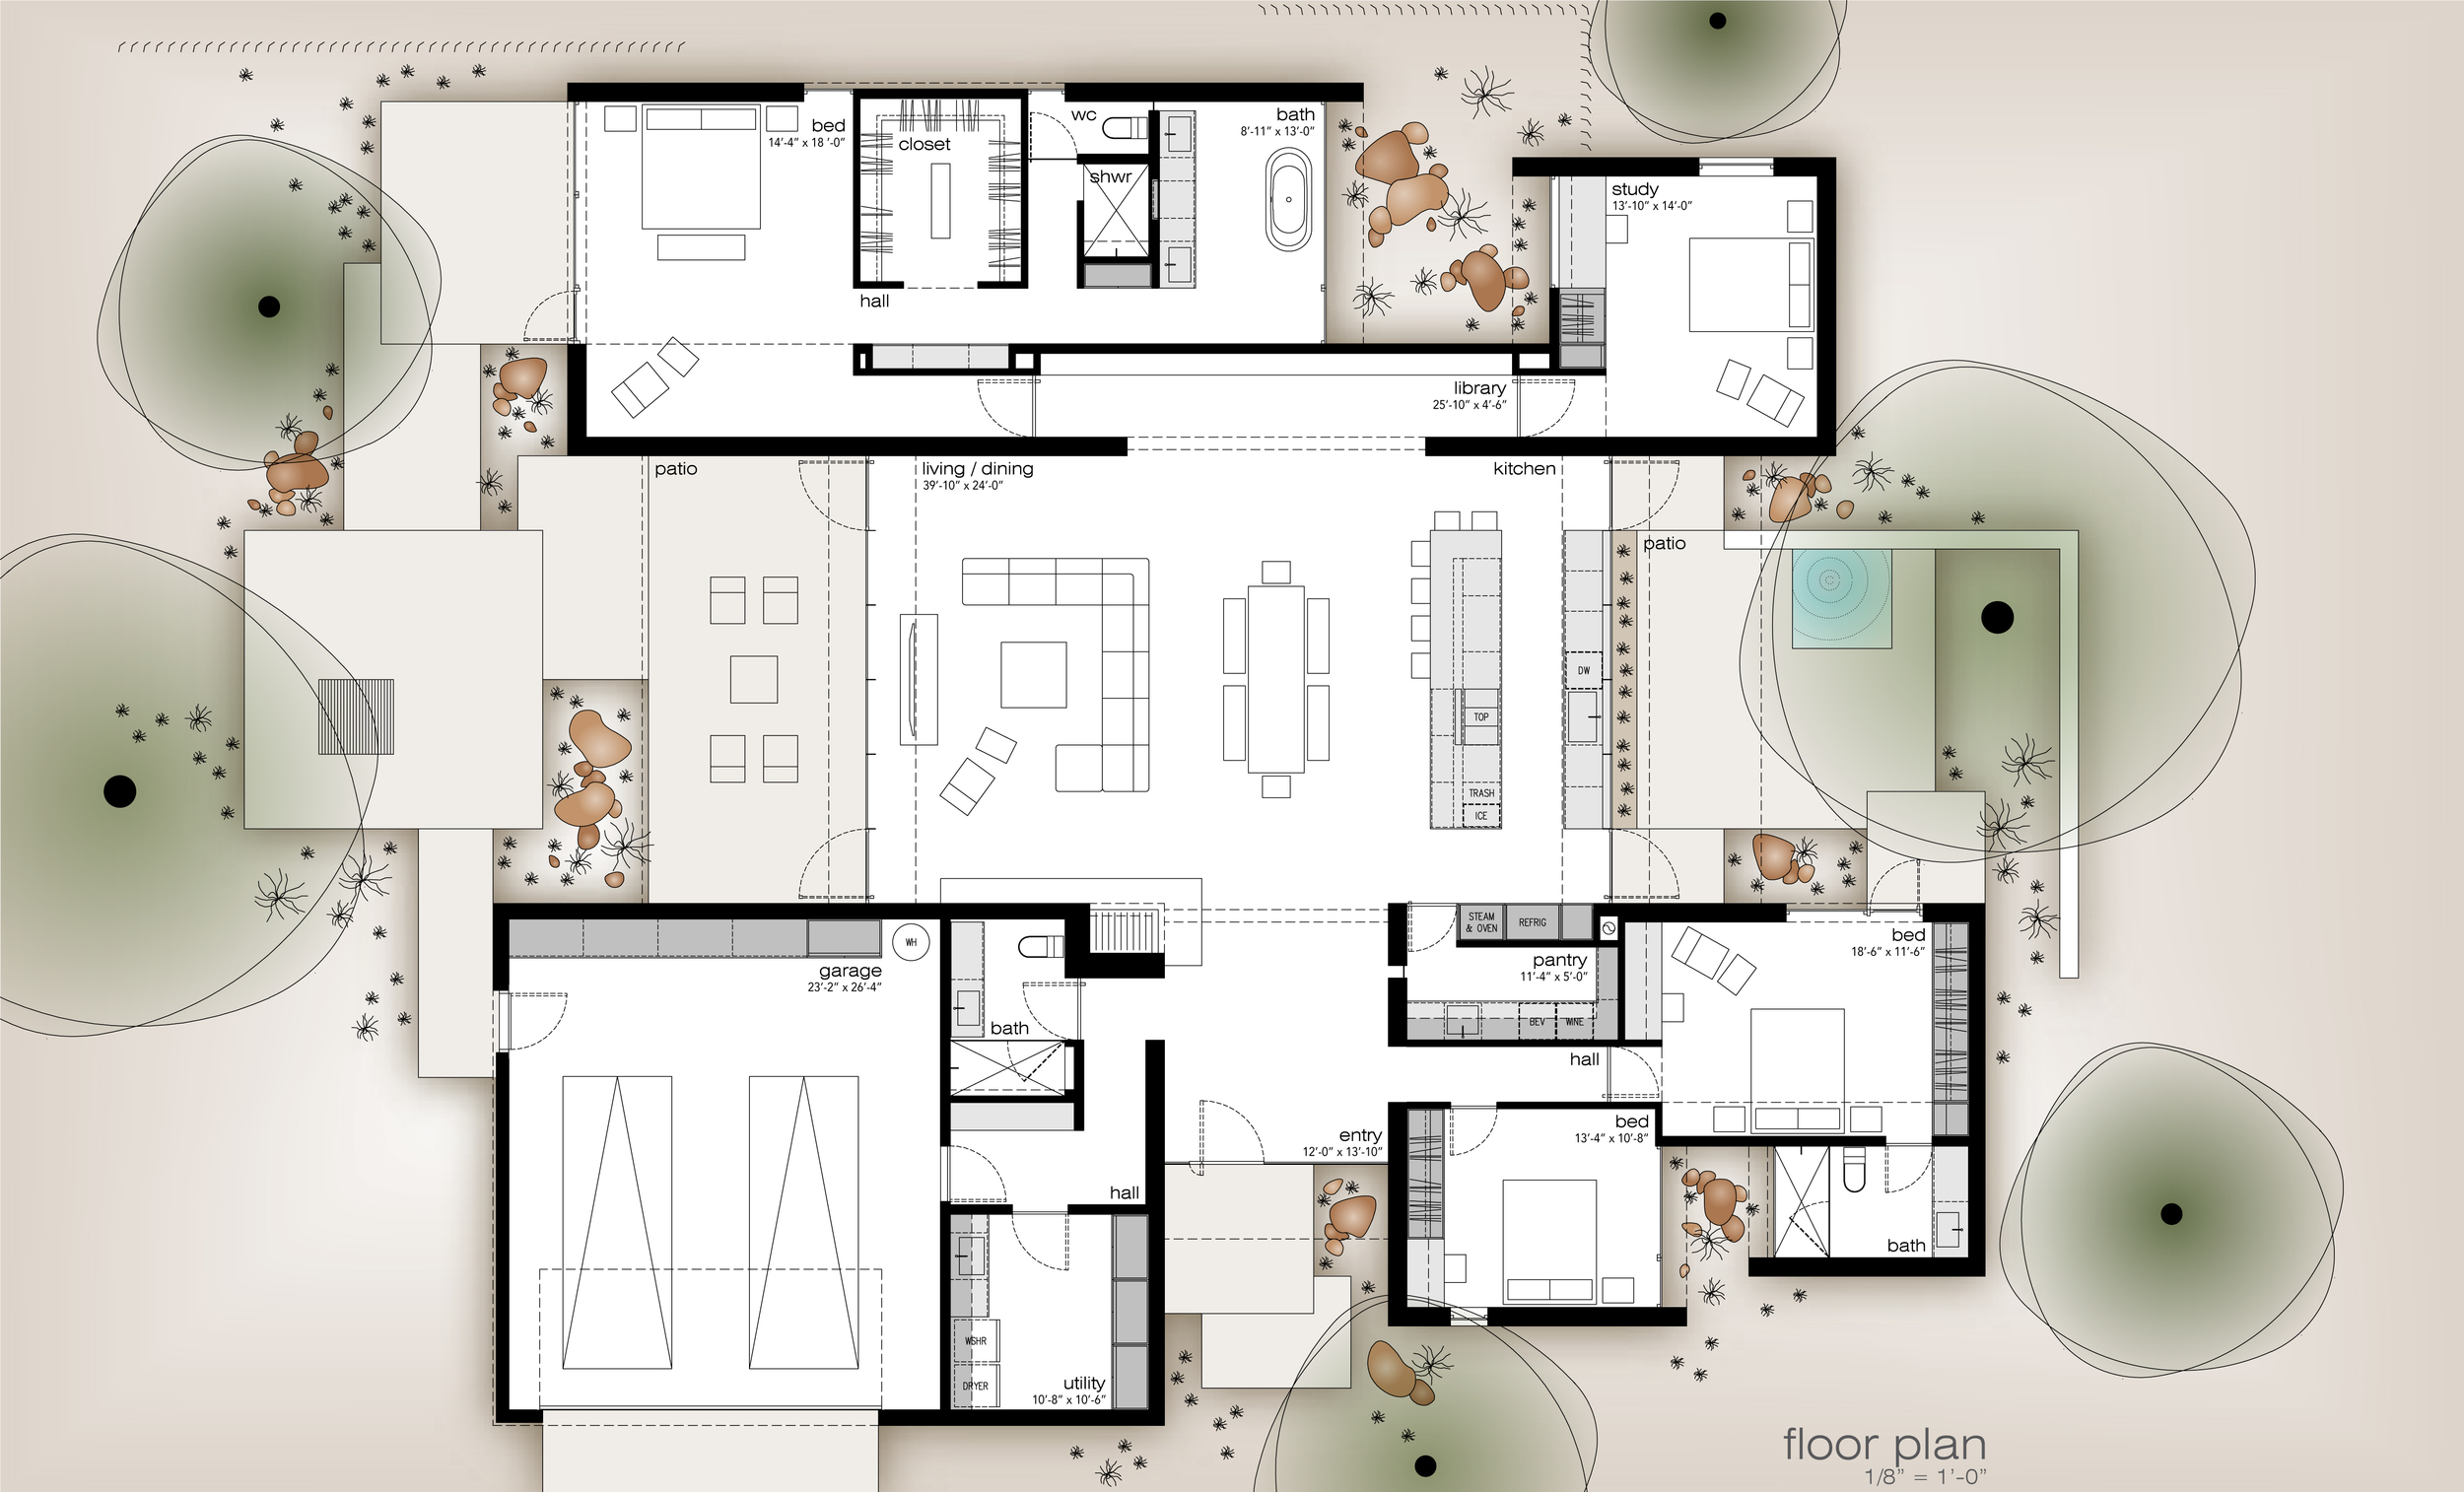 Palo Verde_ colored floor plan_042116_mod.jpg